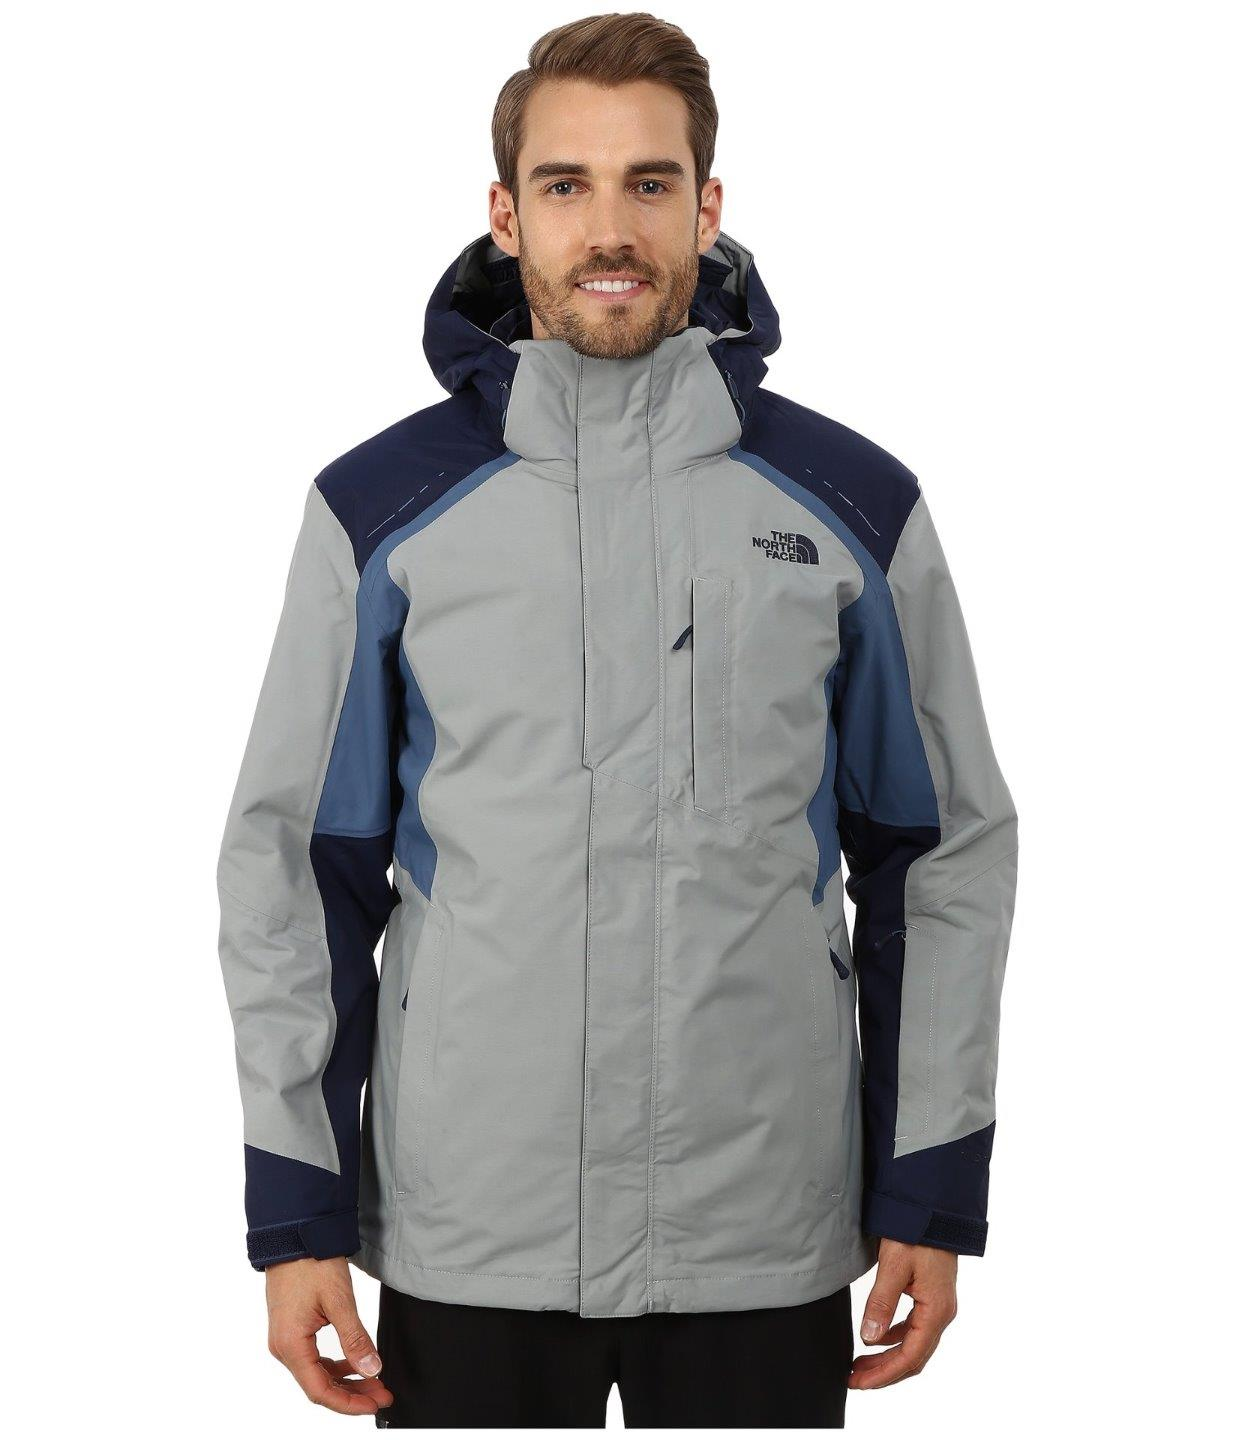 5f25affe6 switzerland the north face vortex triclimate 3 in 1 jacket mens ...